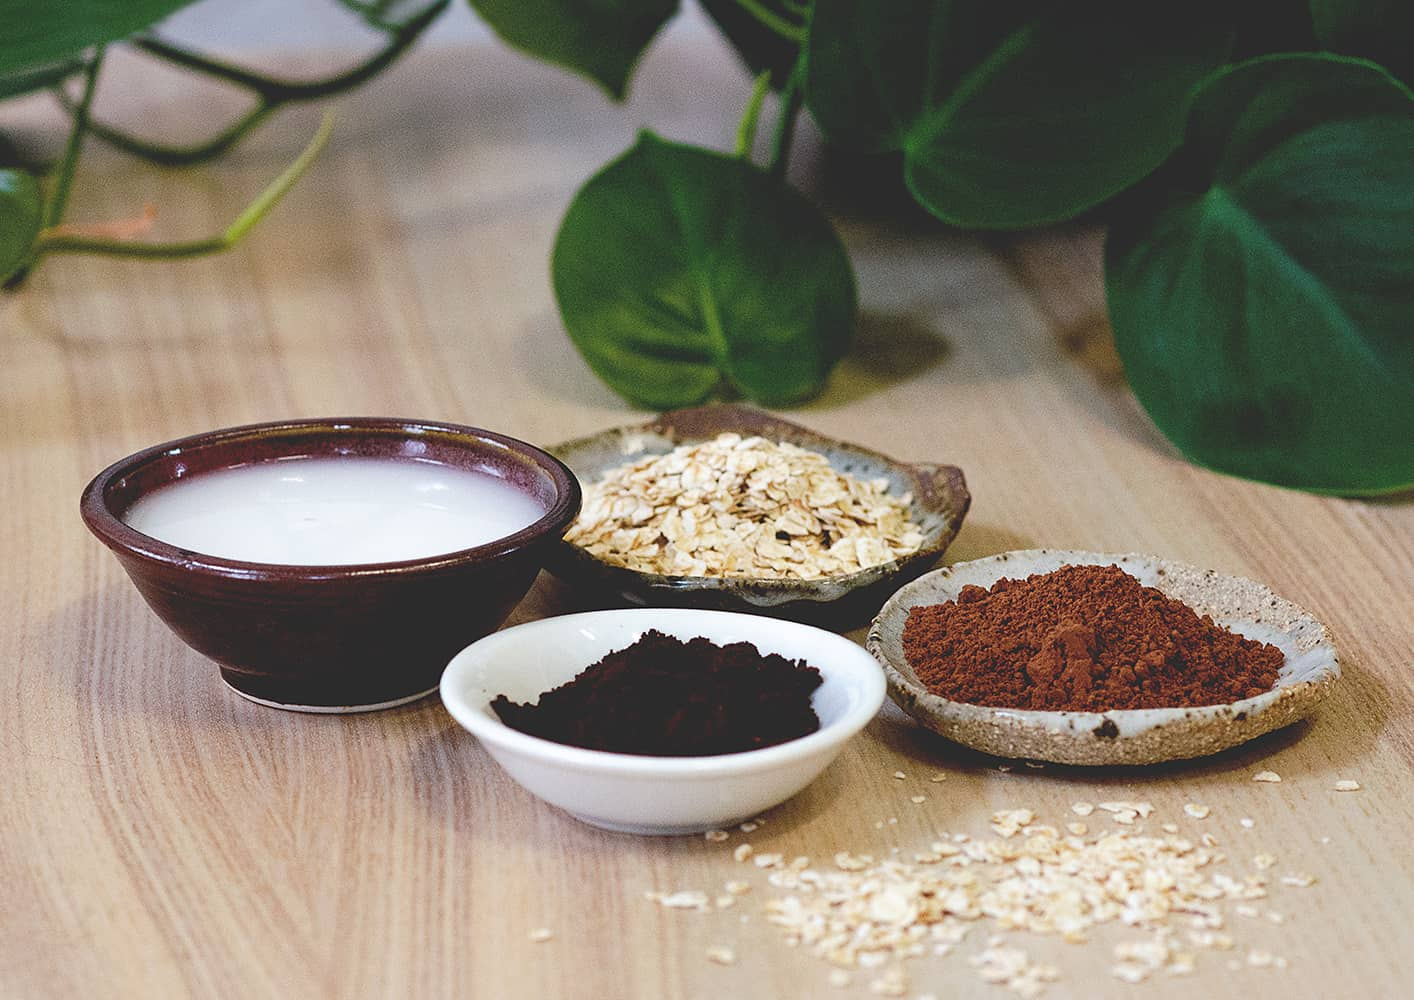 Ingredients to make a Cacao Brightener Vegan Face Mask by Sienna